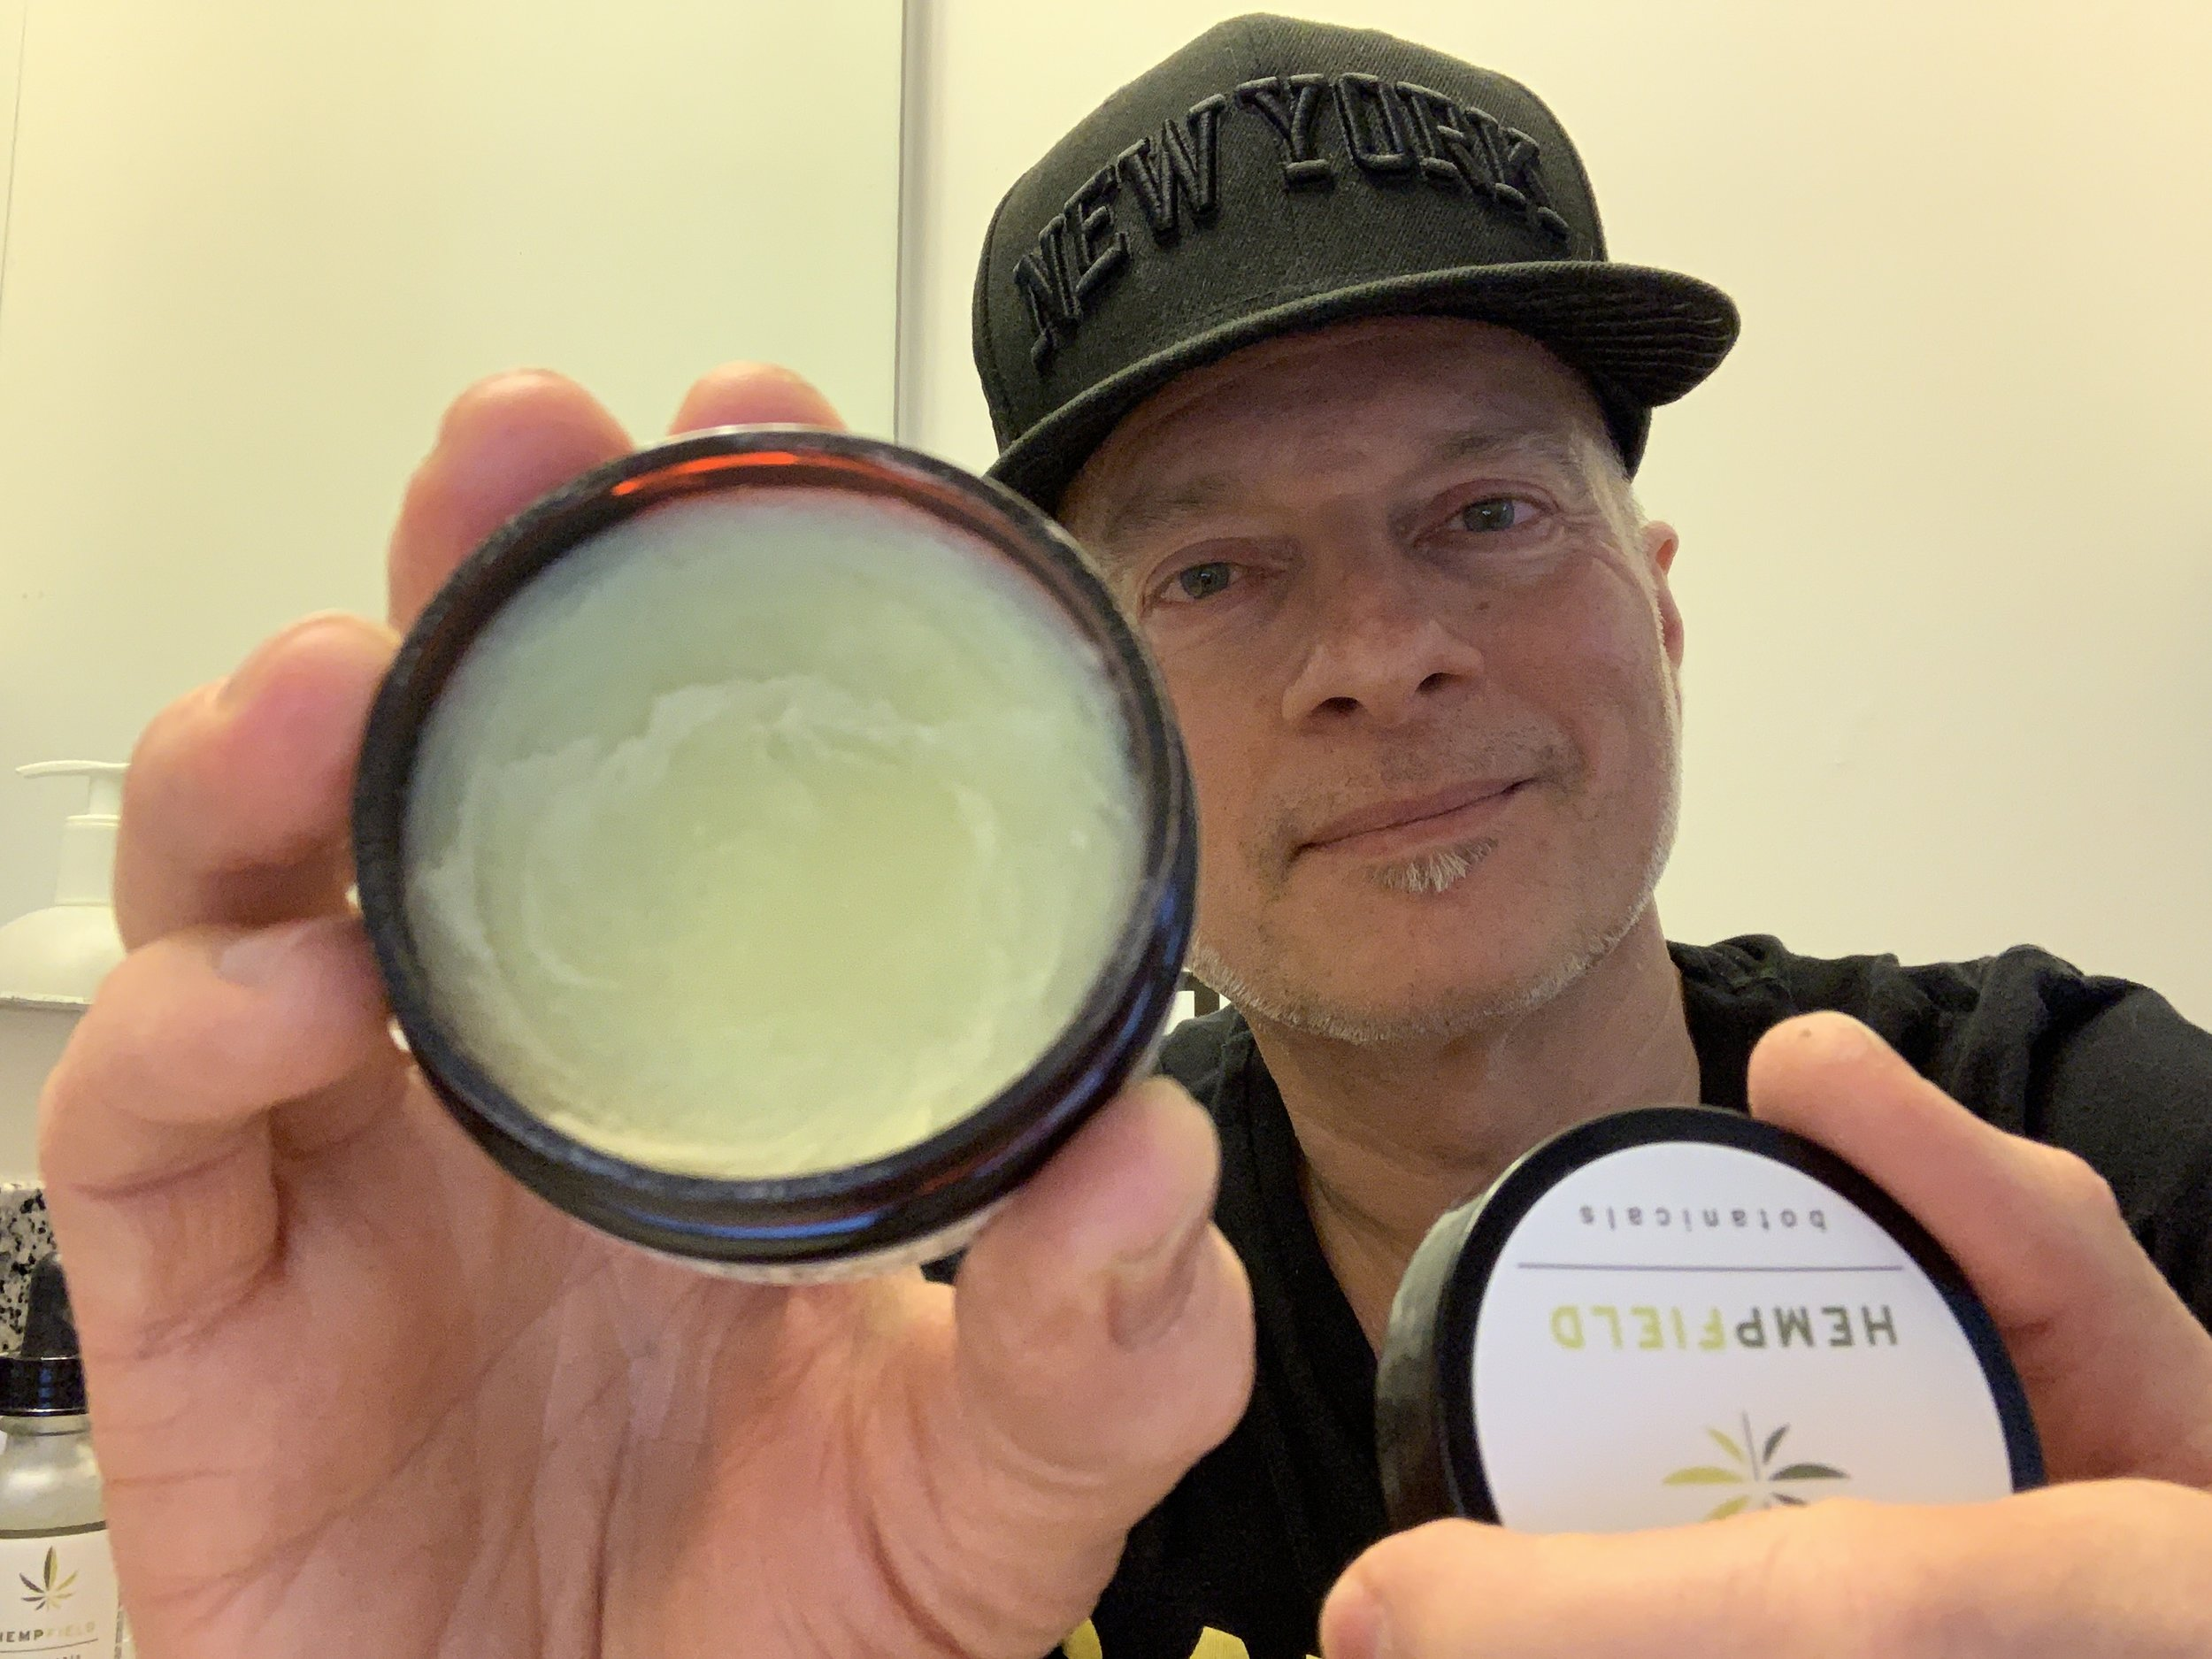 My savior CBD salve!